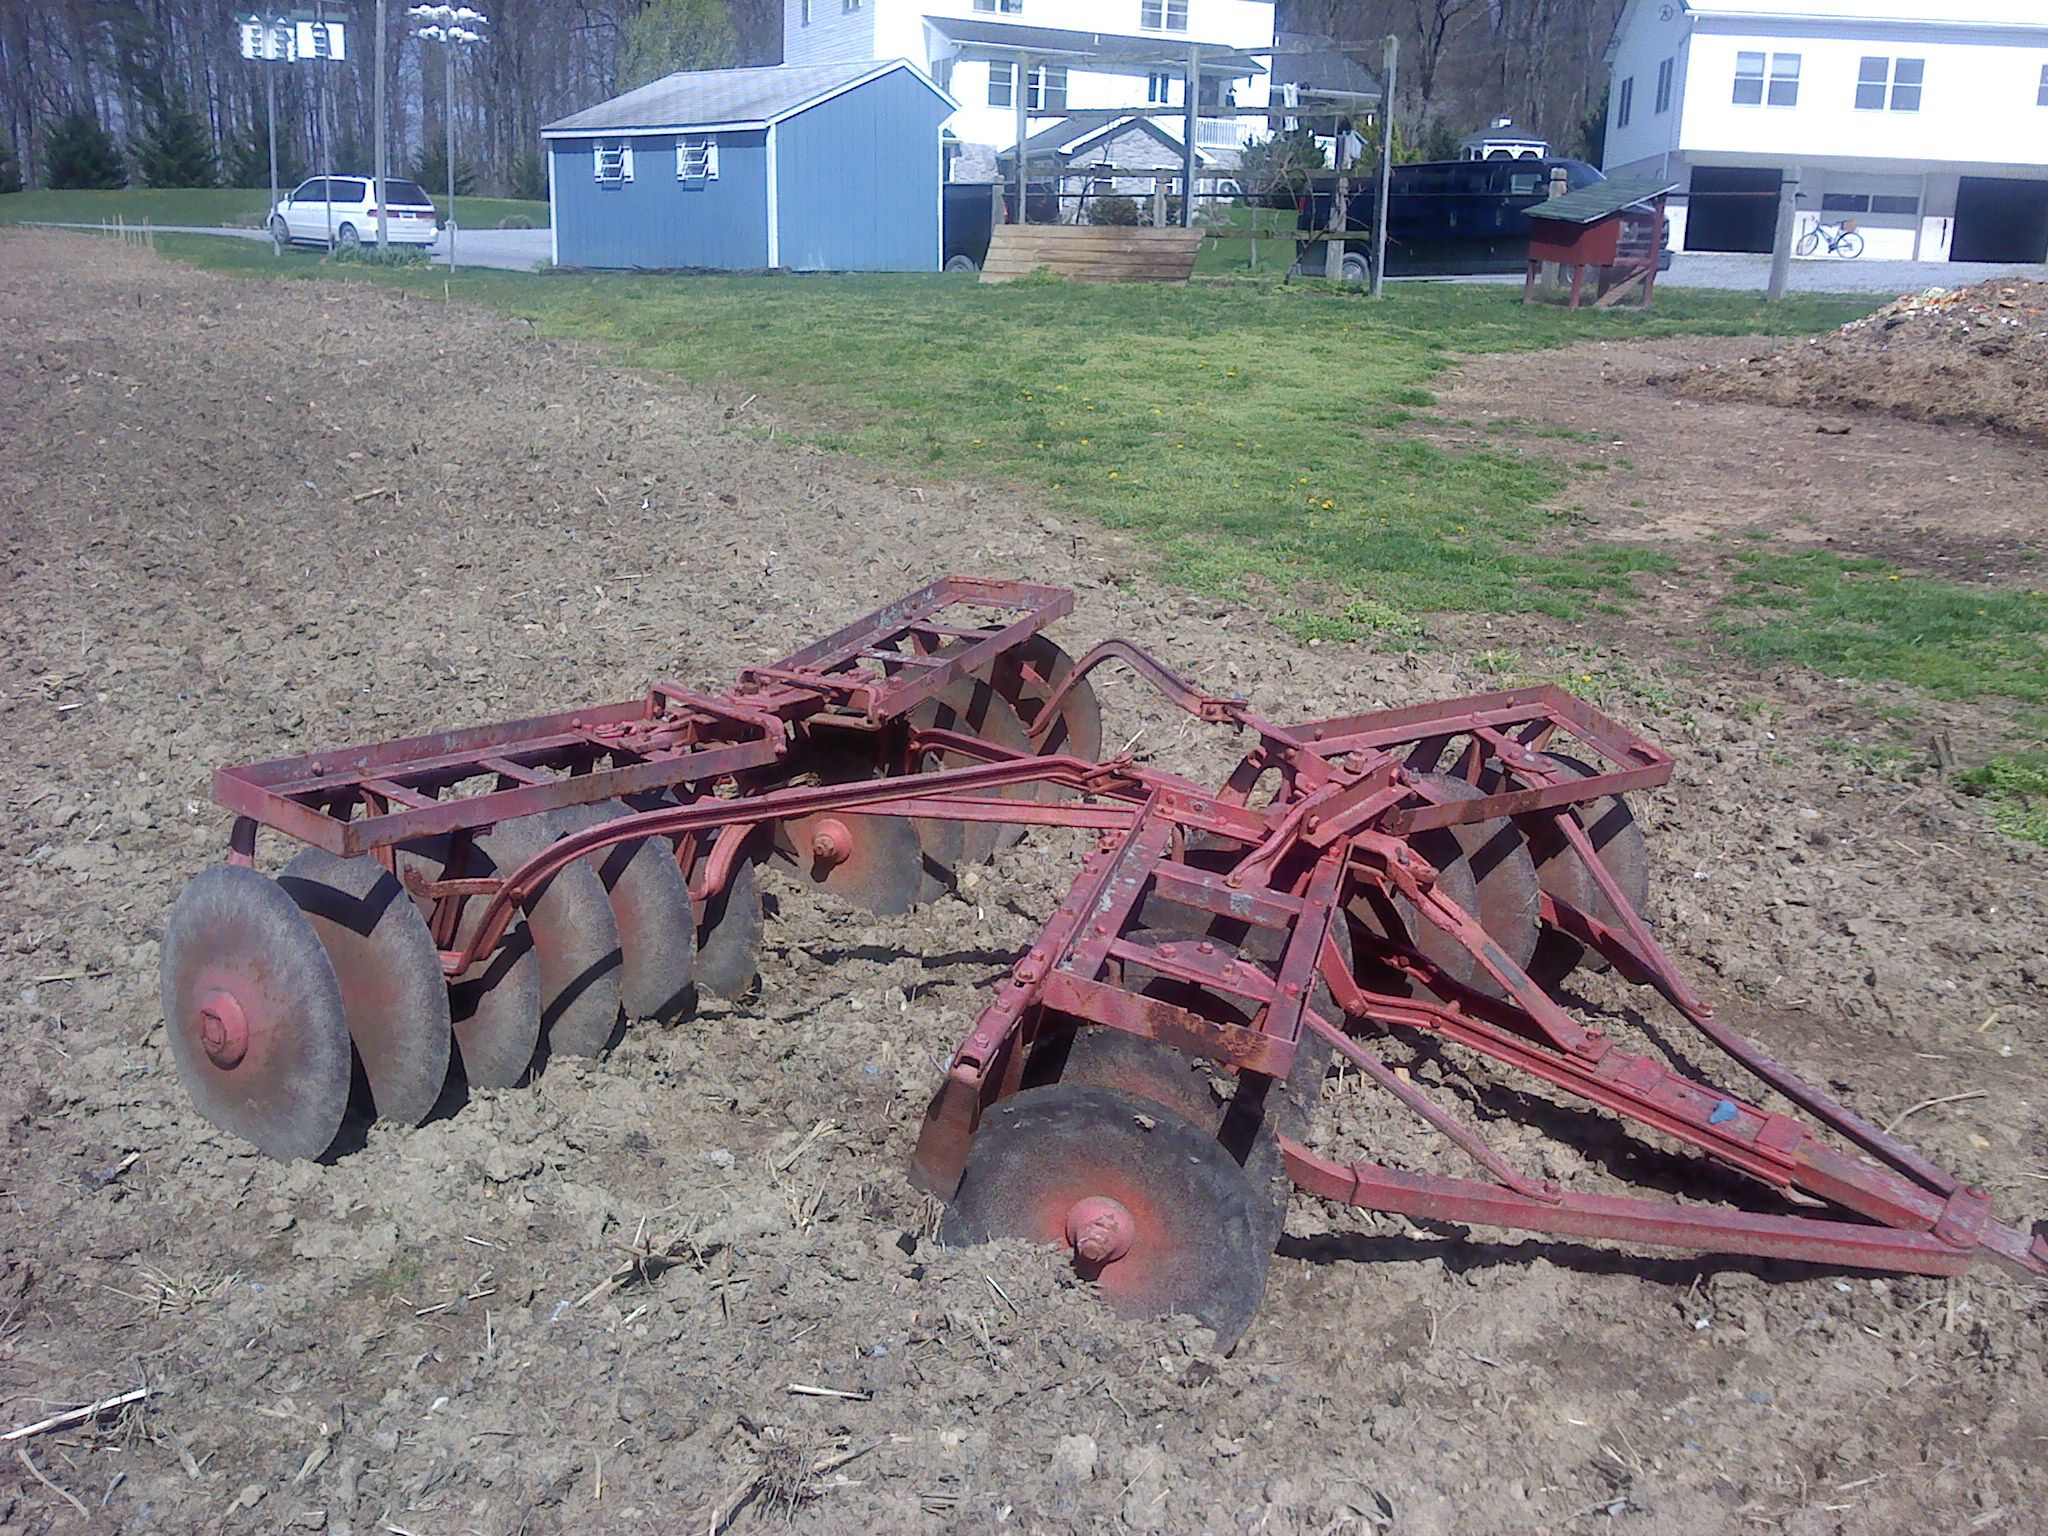 disc harrow - used one like this behind a Ford 8N many times